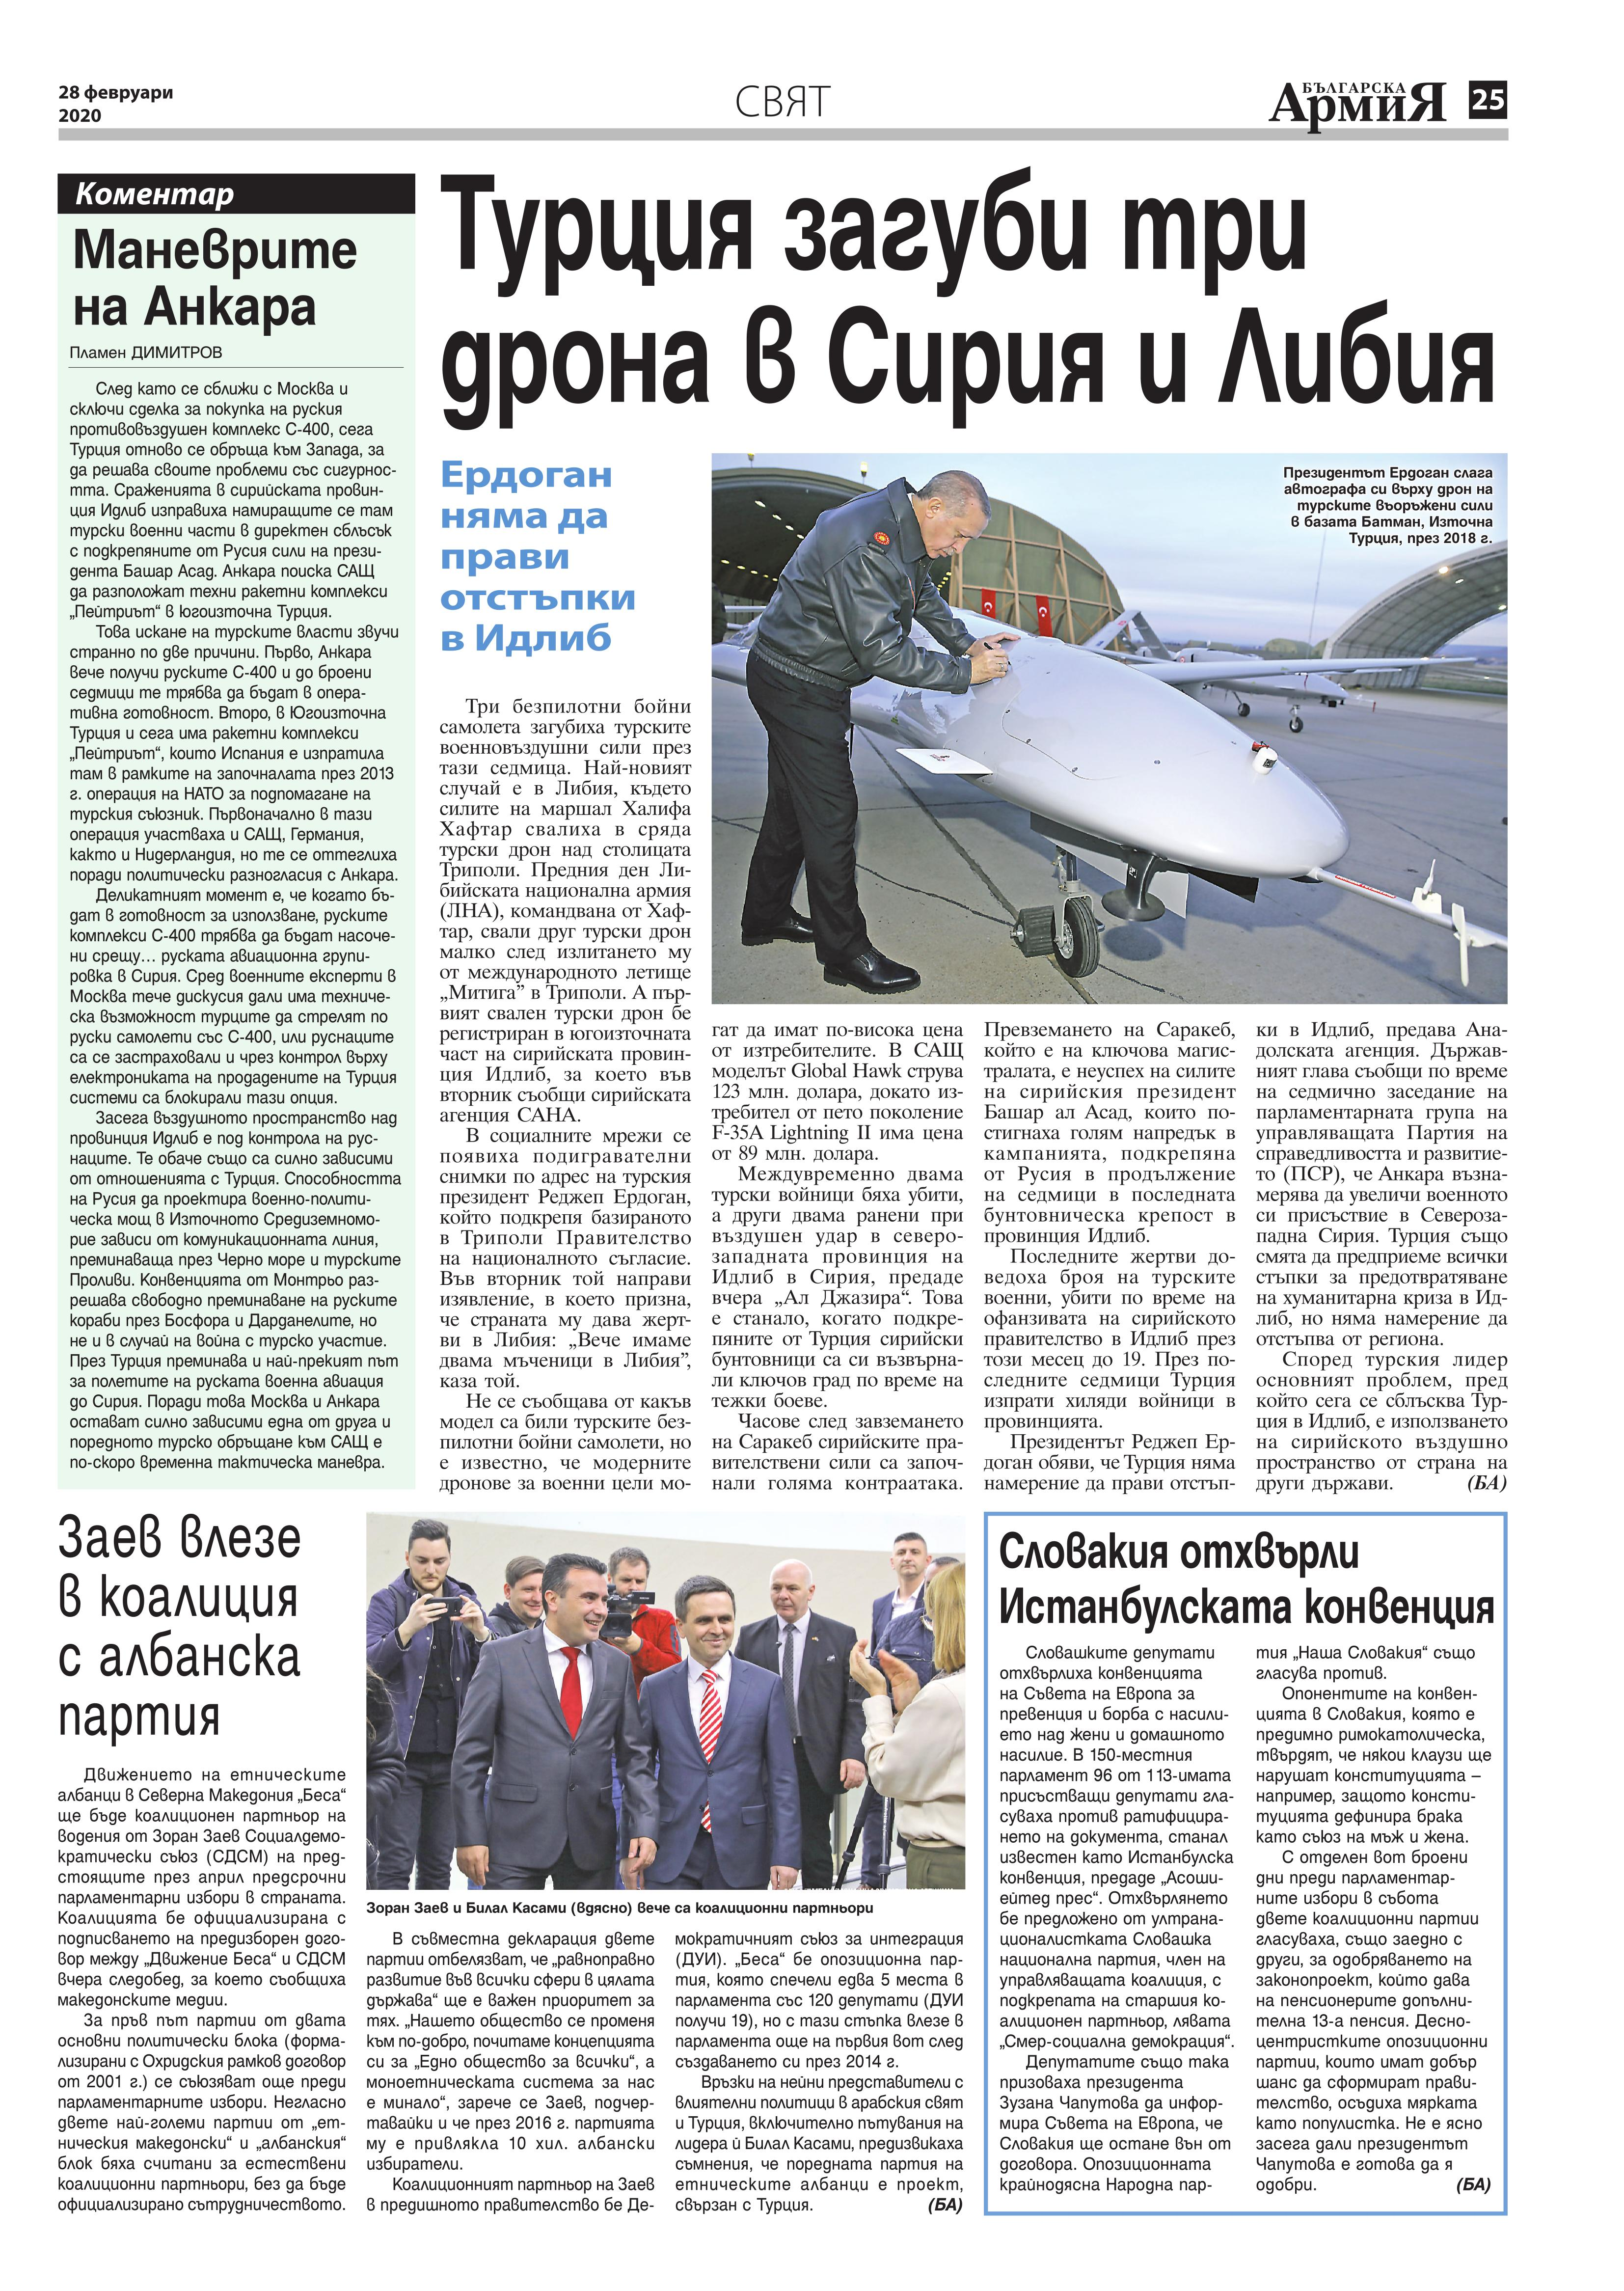 https://www.armymedia.bg/wp-content/uploads/2015/06/25.page1_-108.jpg